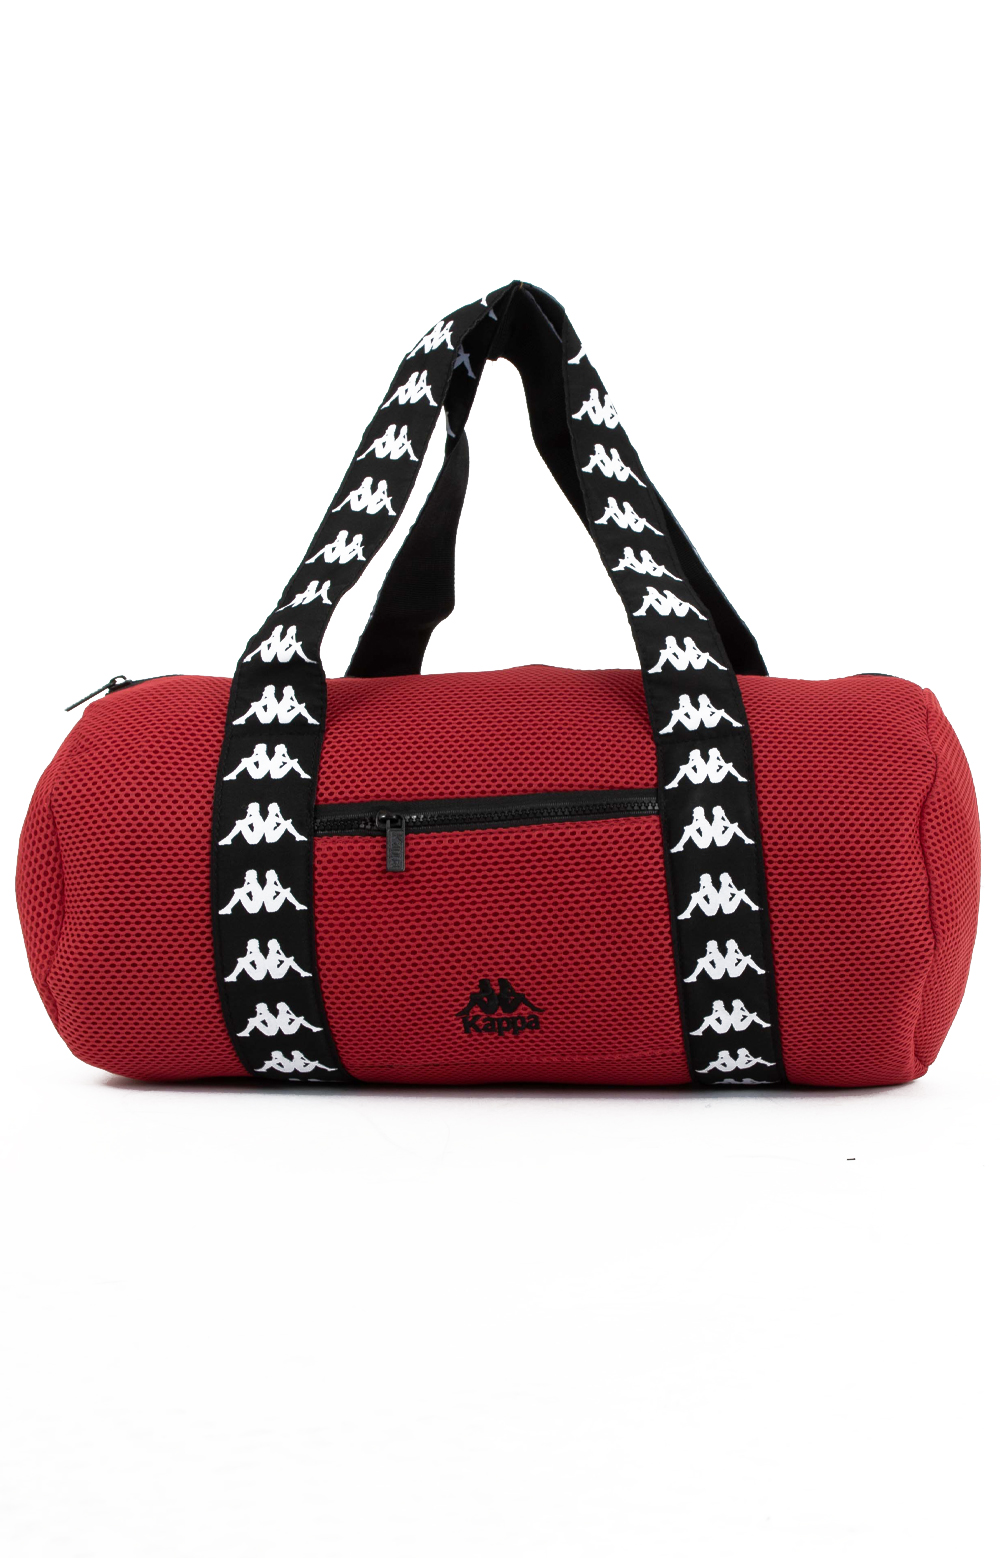 Kappa, 222 Banda Angy Duffle Bag - Red/Black/White